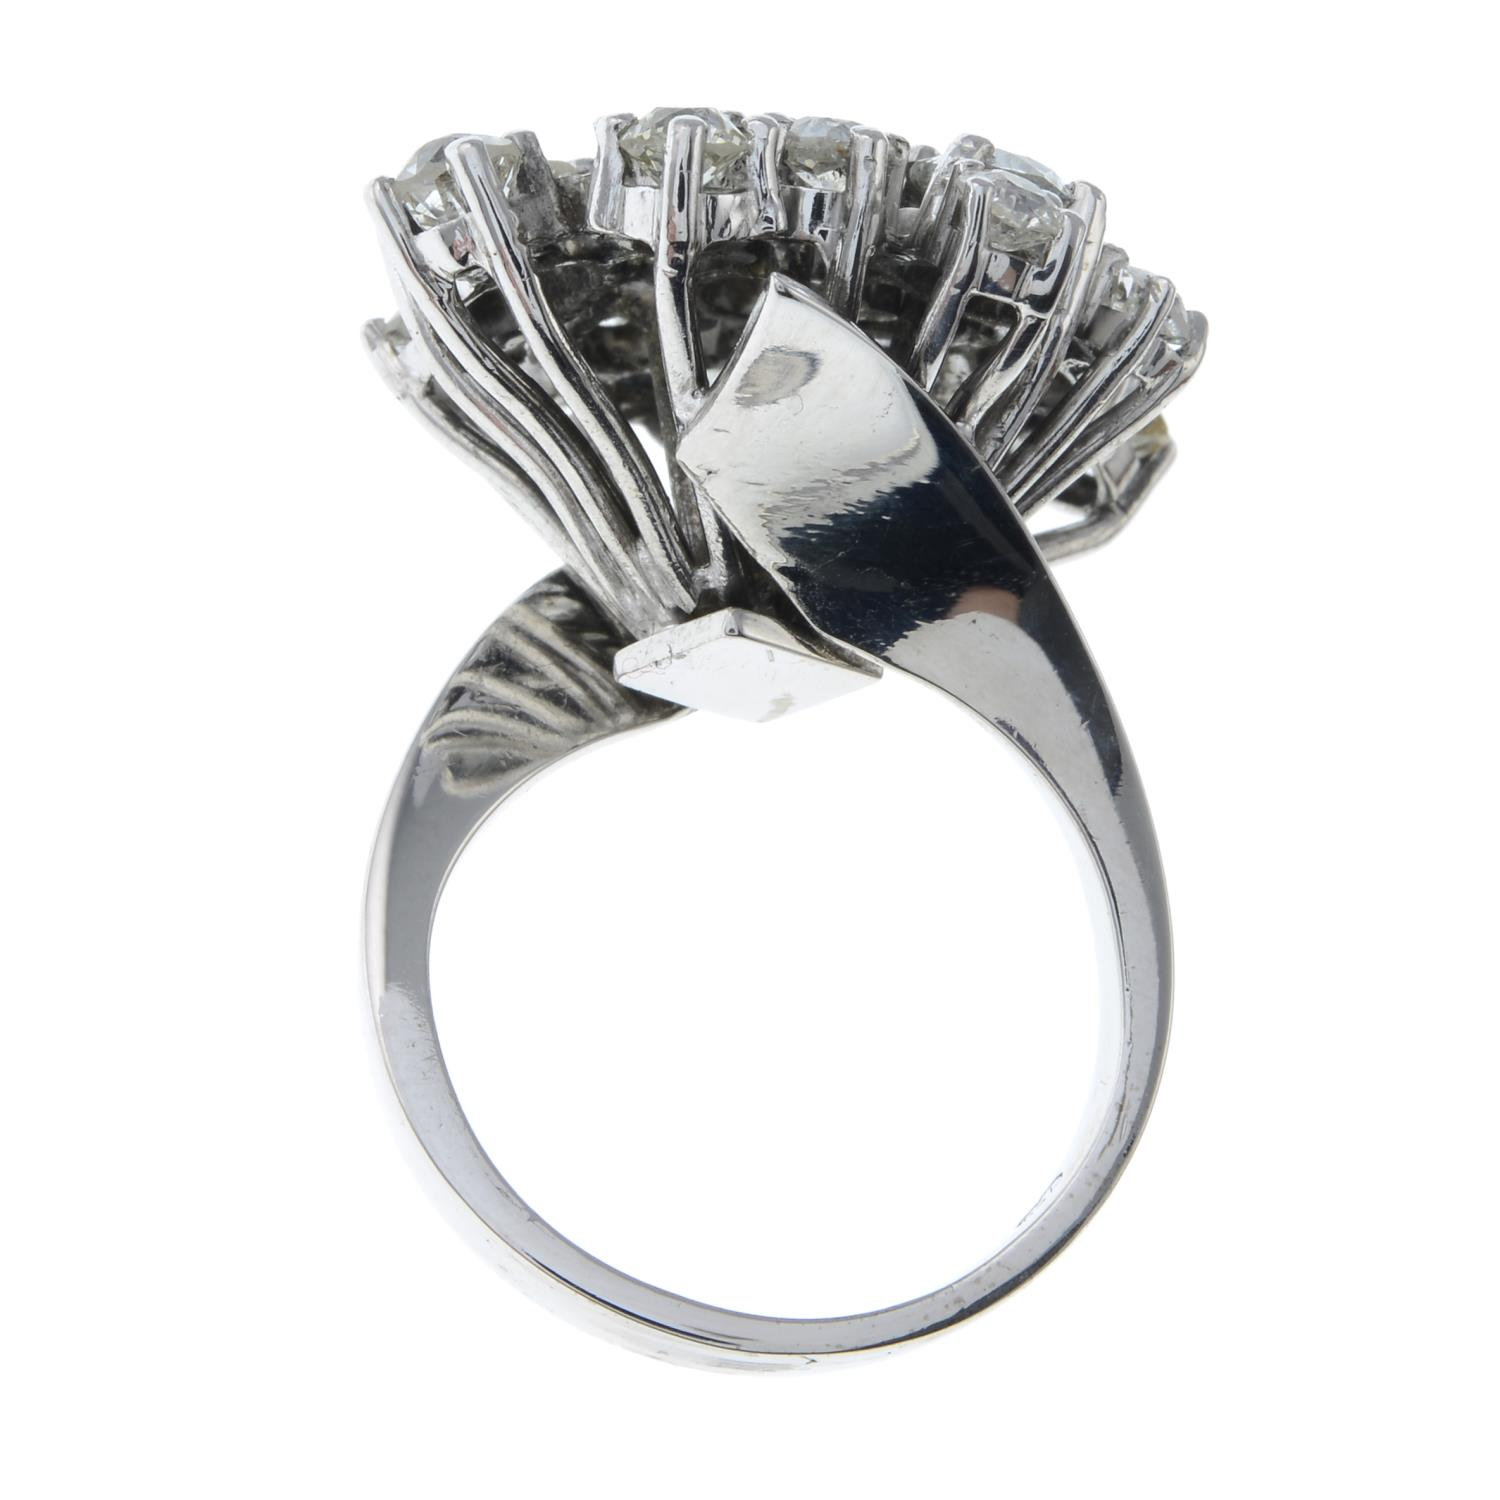 A mid 20th century 18ct gold old-cut diamond cocktail ring.Estimated total diamond weight 4 to - Image 6 of 6